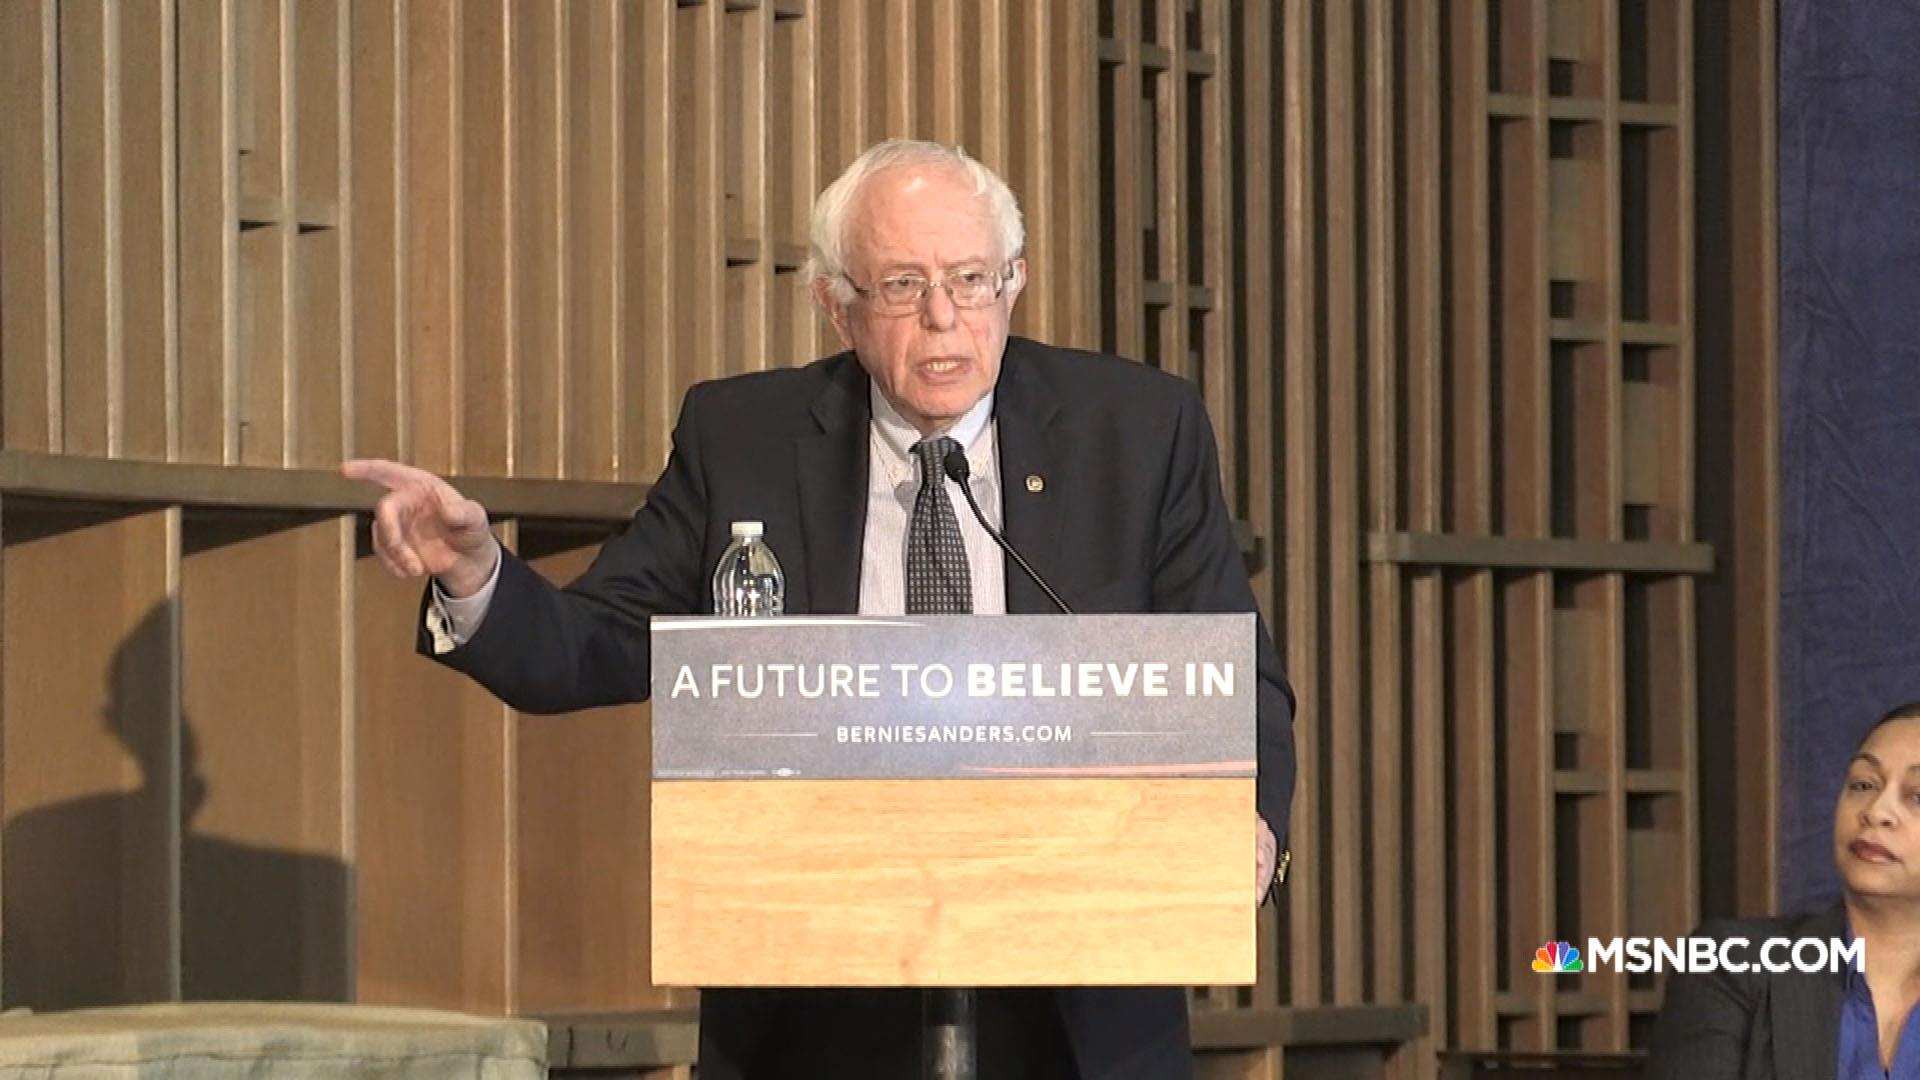 Sanders: Why are you paying for poison water?